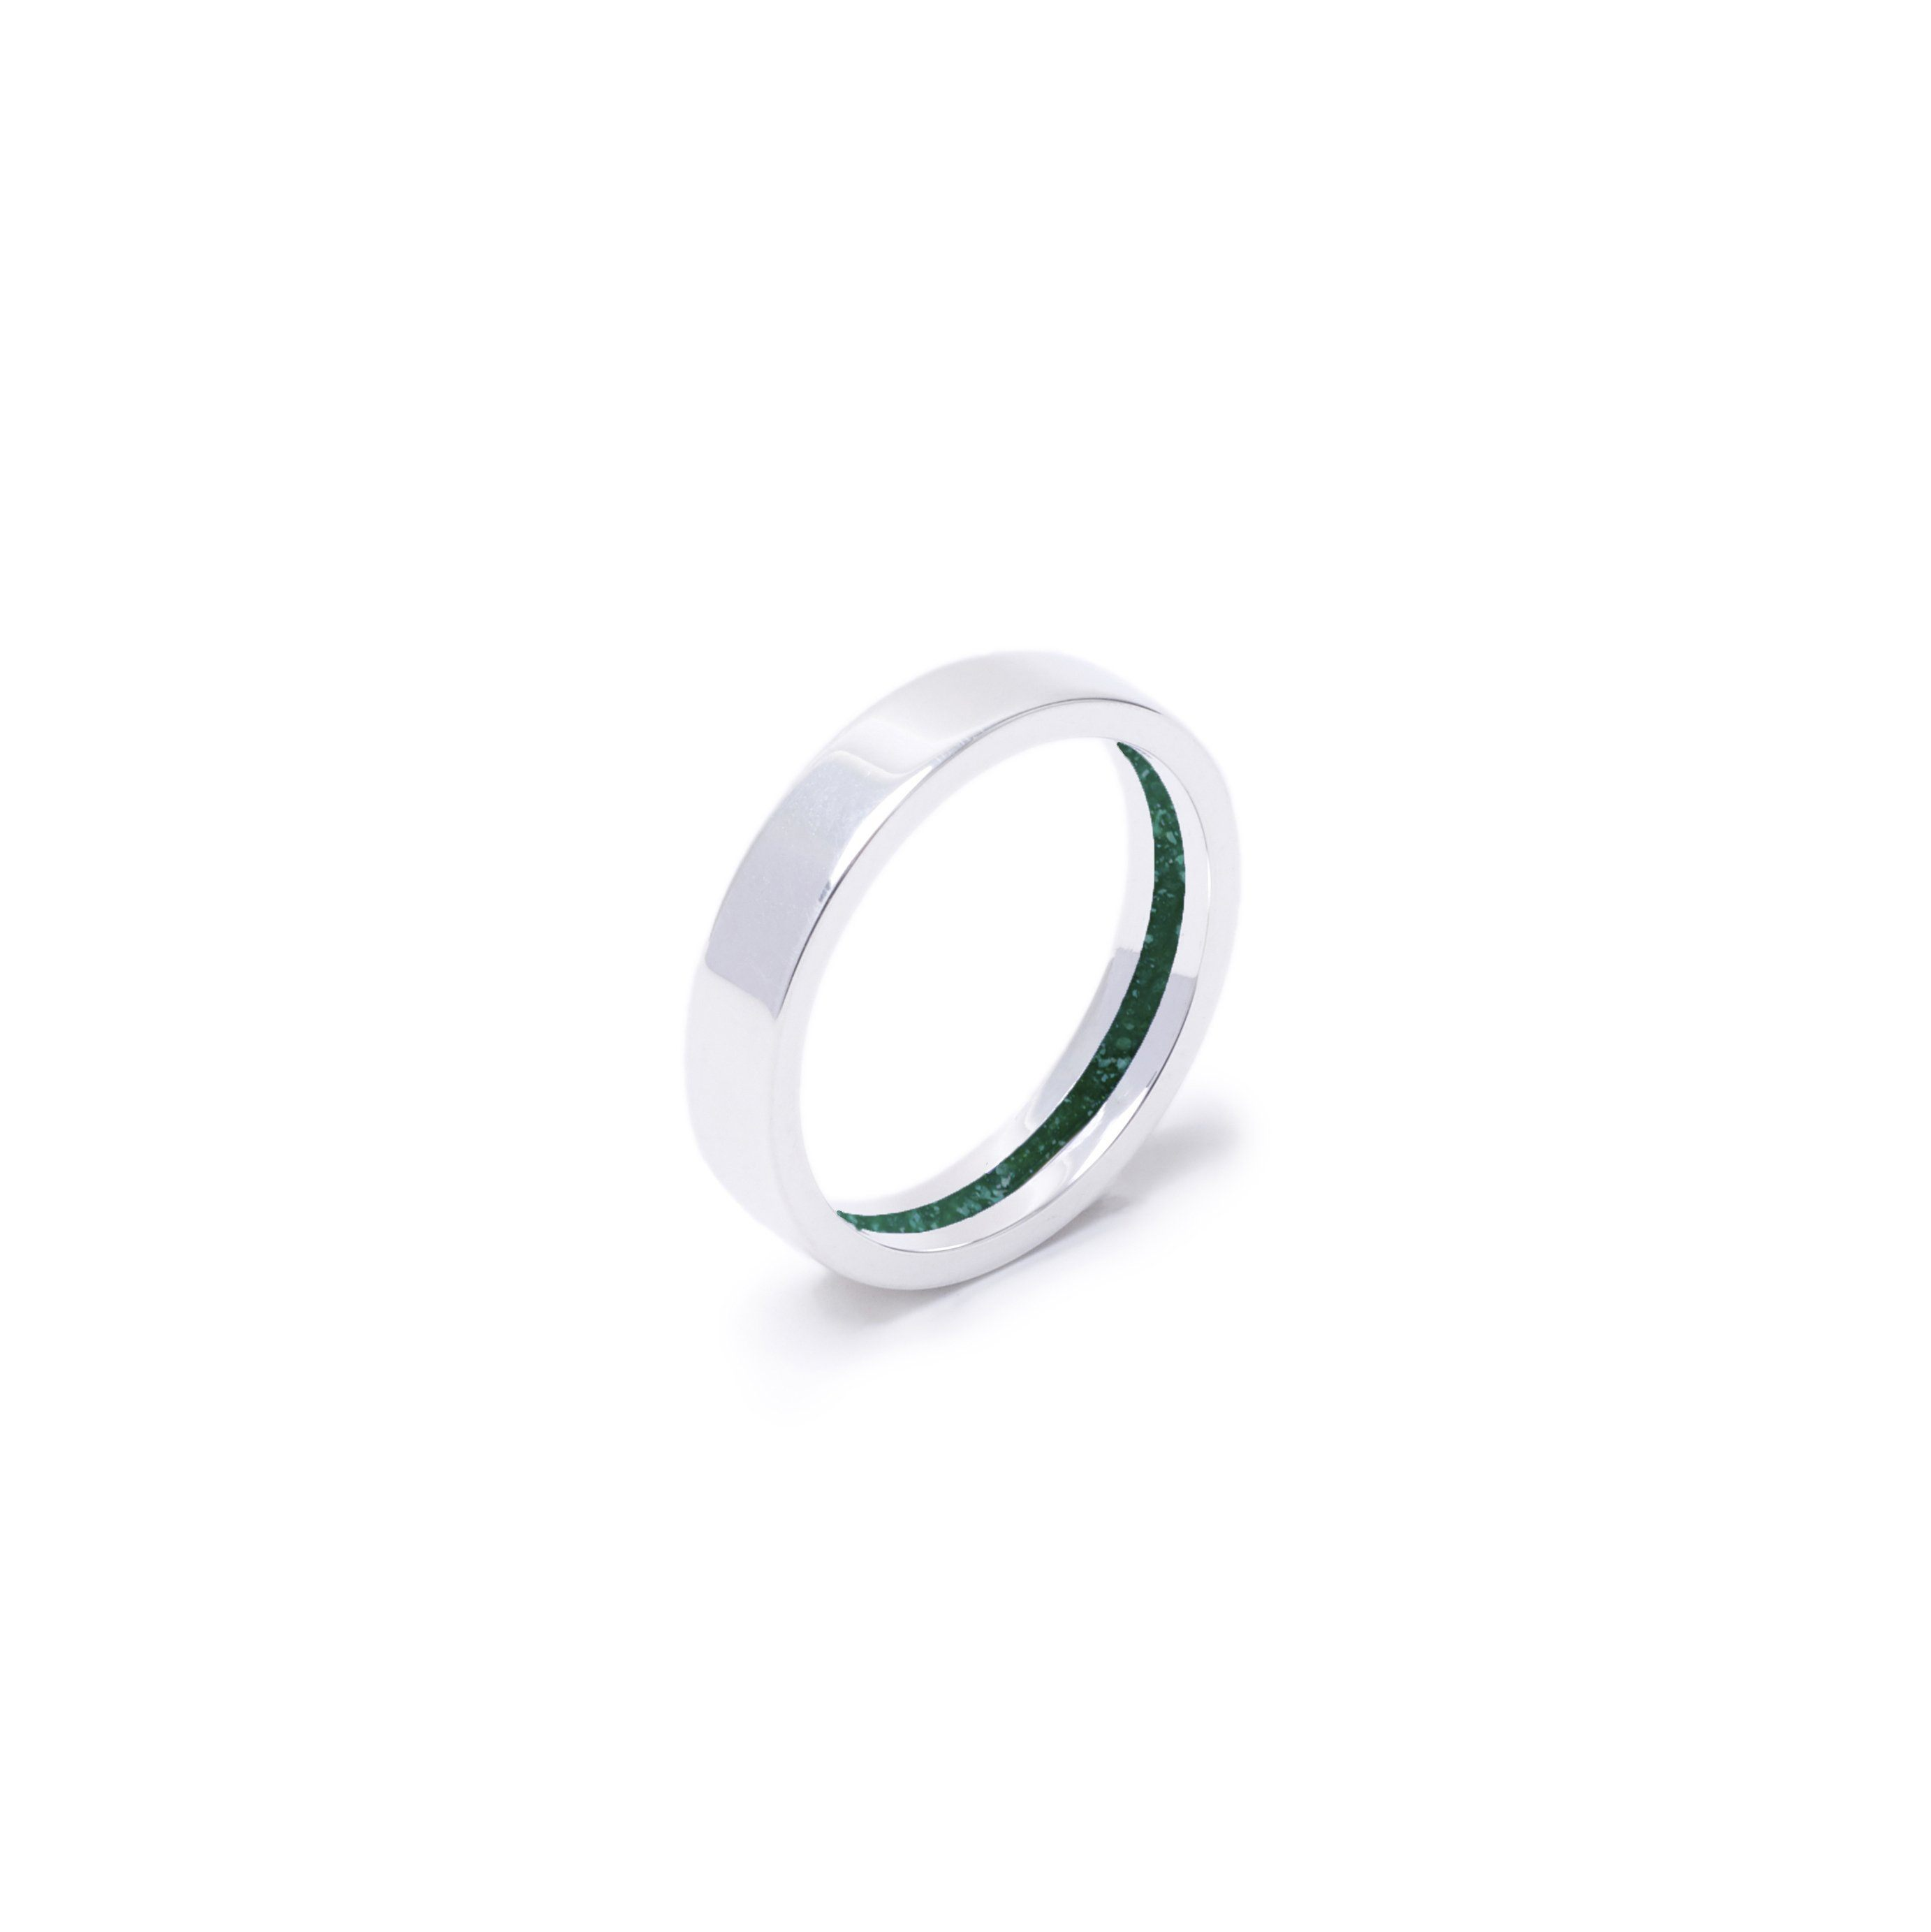 Everence Ring, Sterling Silver everence.life 4mm Emerald